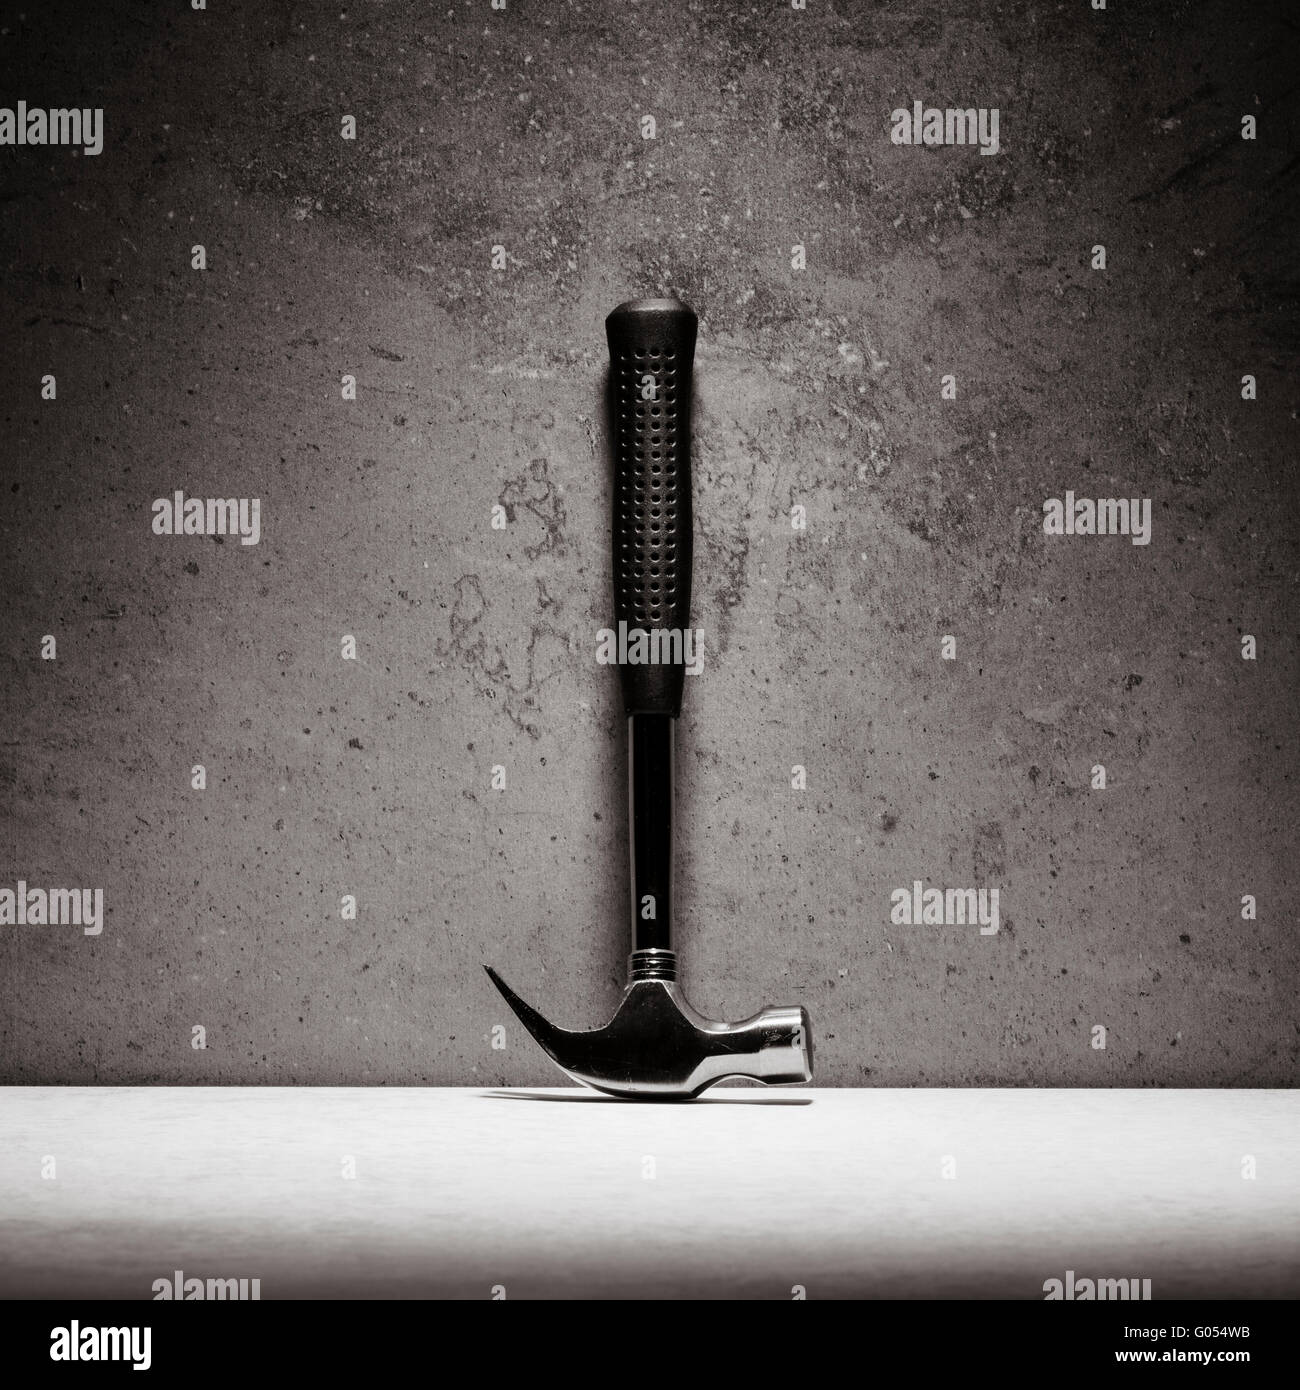 Hammer and stone wall. Still life of work tool. Concept of diy and repair. - Stock Image